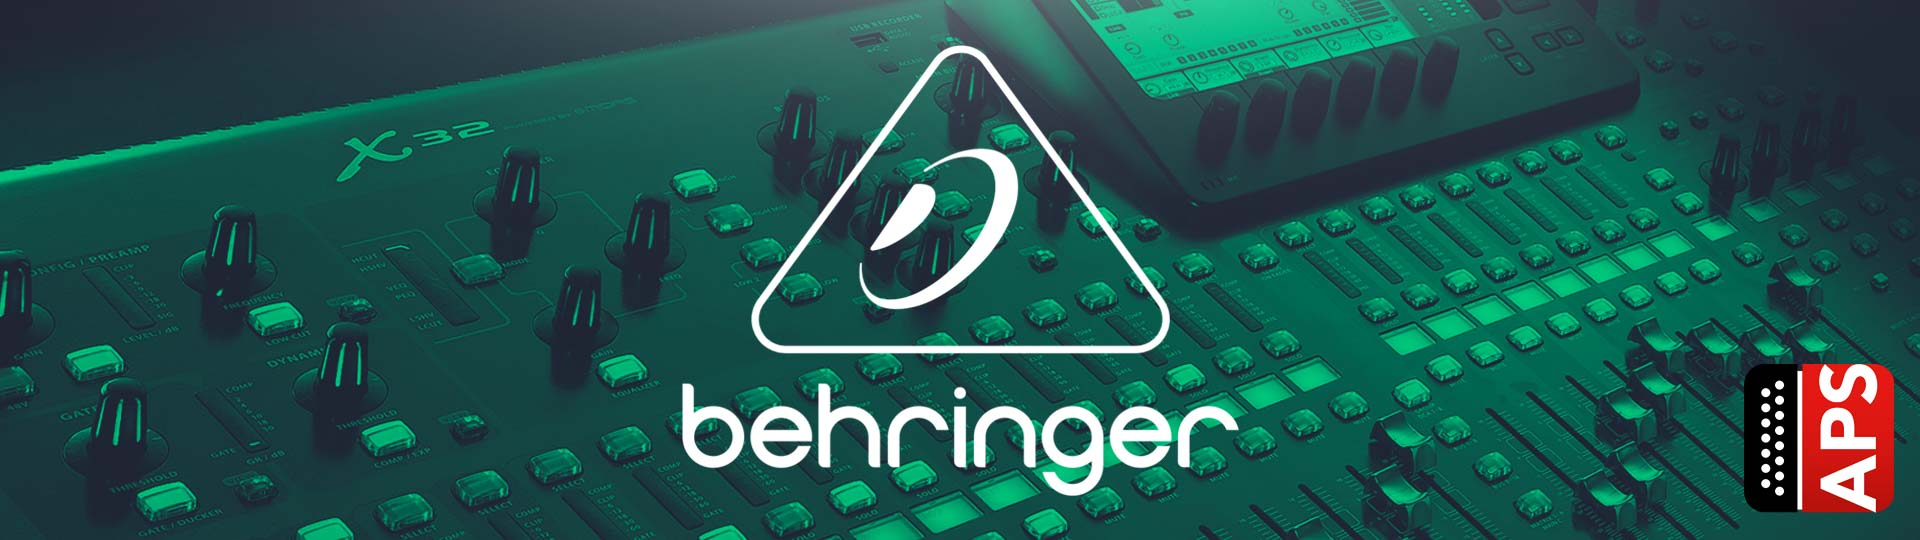 Accordion Pro Shop Colección Behringer Banner